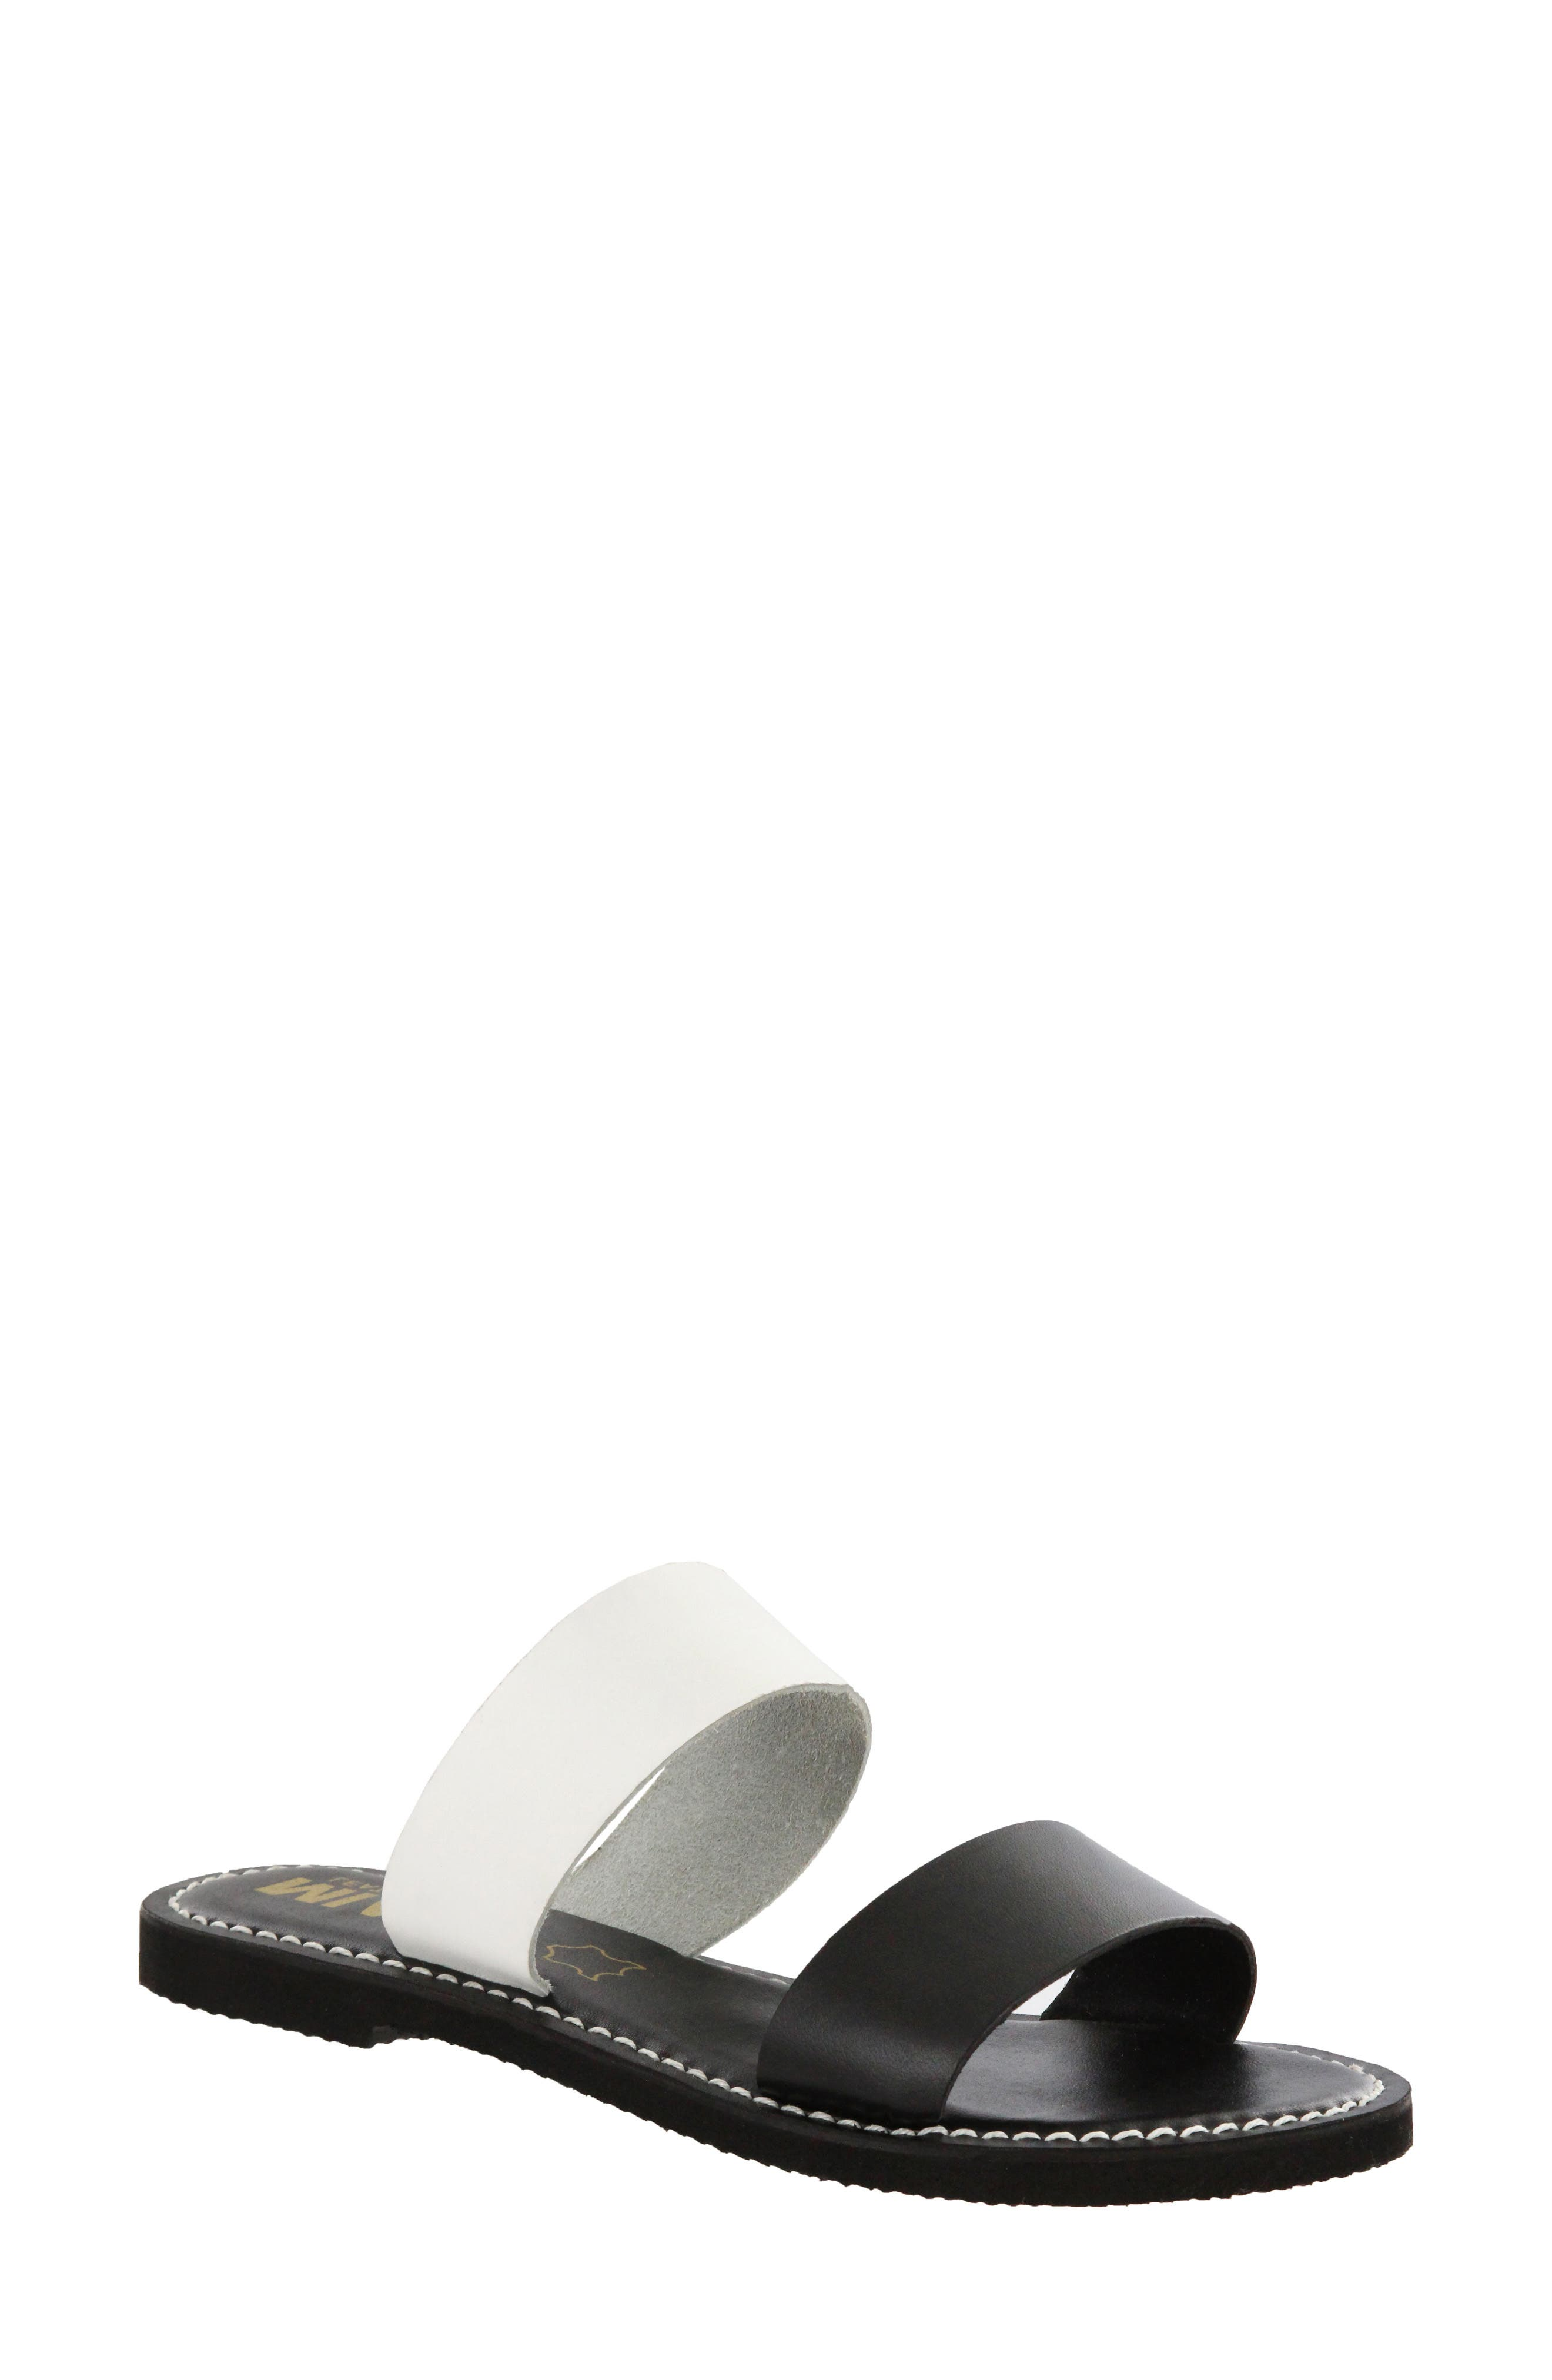 Nila Two-Band Slide Sandal,                         Main,                         color, Black/ White Leather